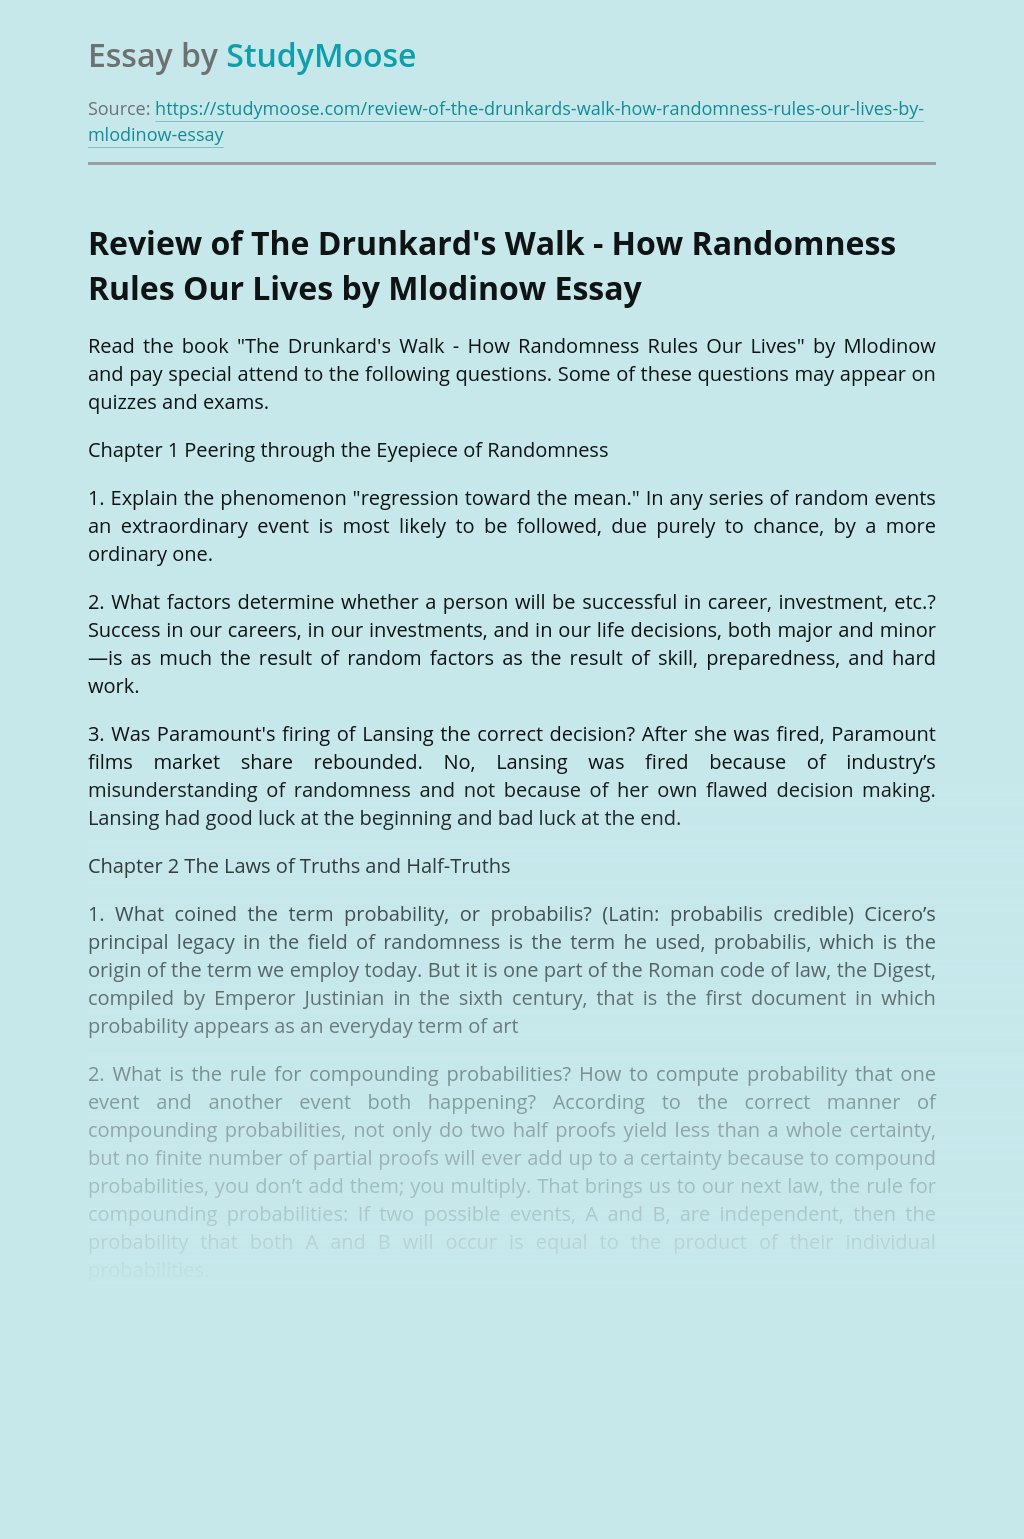 Review of The Drunkard's Walk - How Randomness Rules Our Lives by Mlodinow